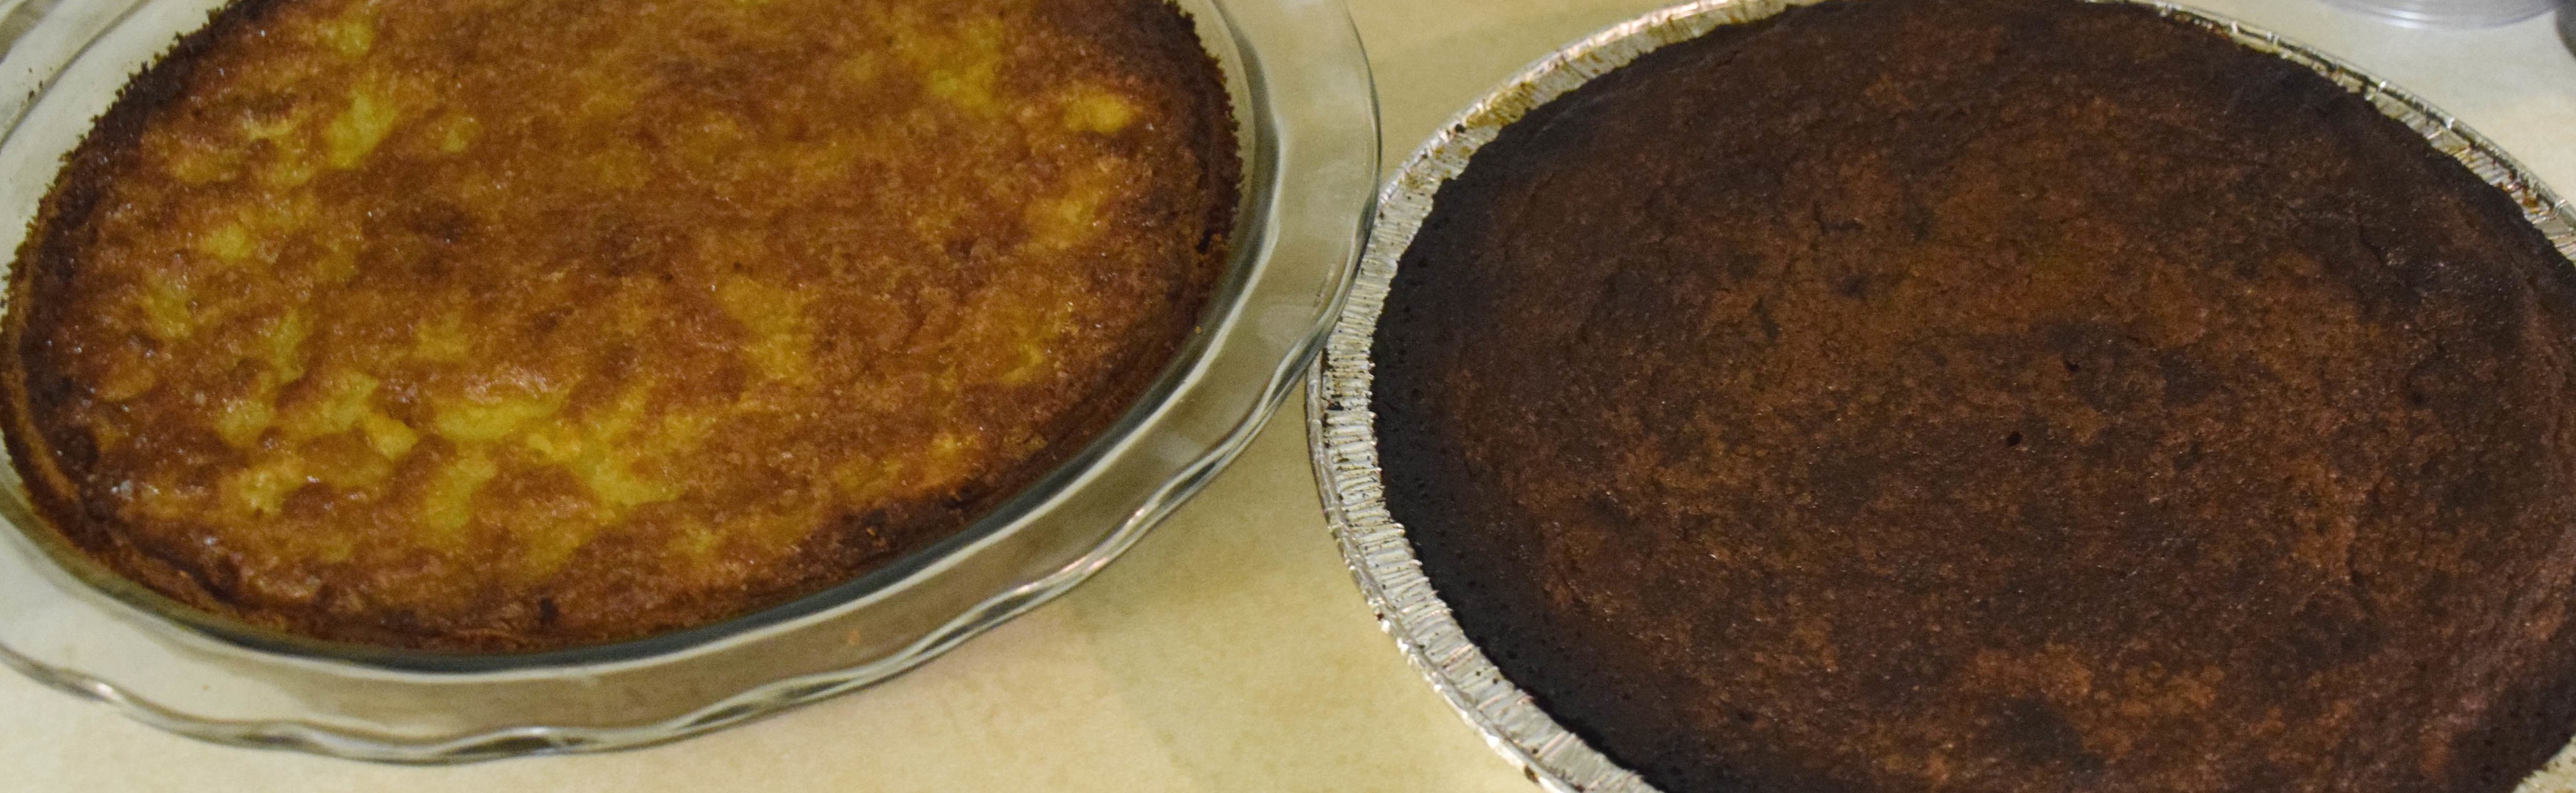 southern chess pie and chocolate chess pie ready for the eating